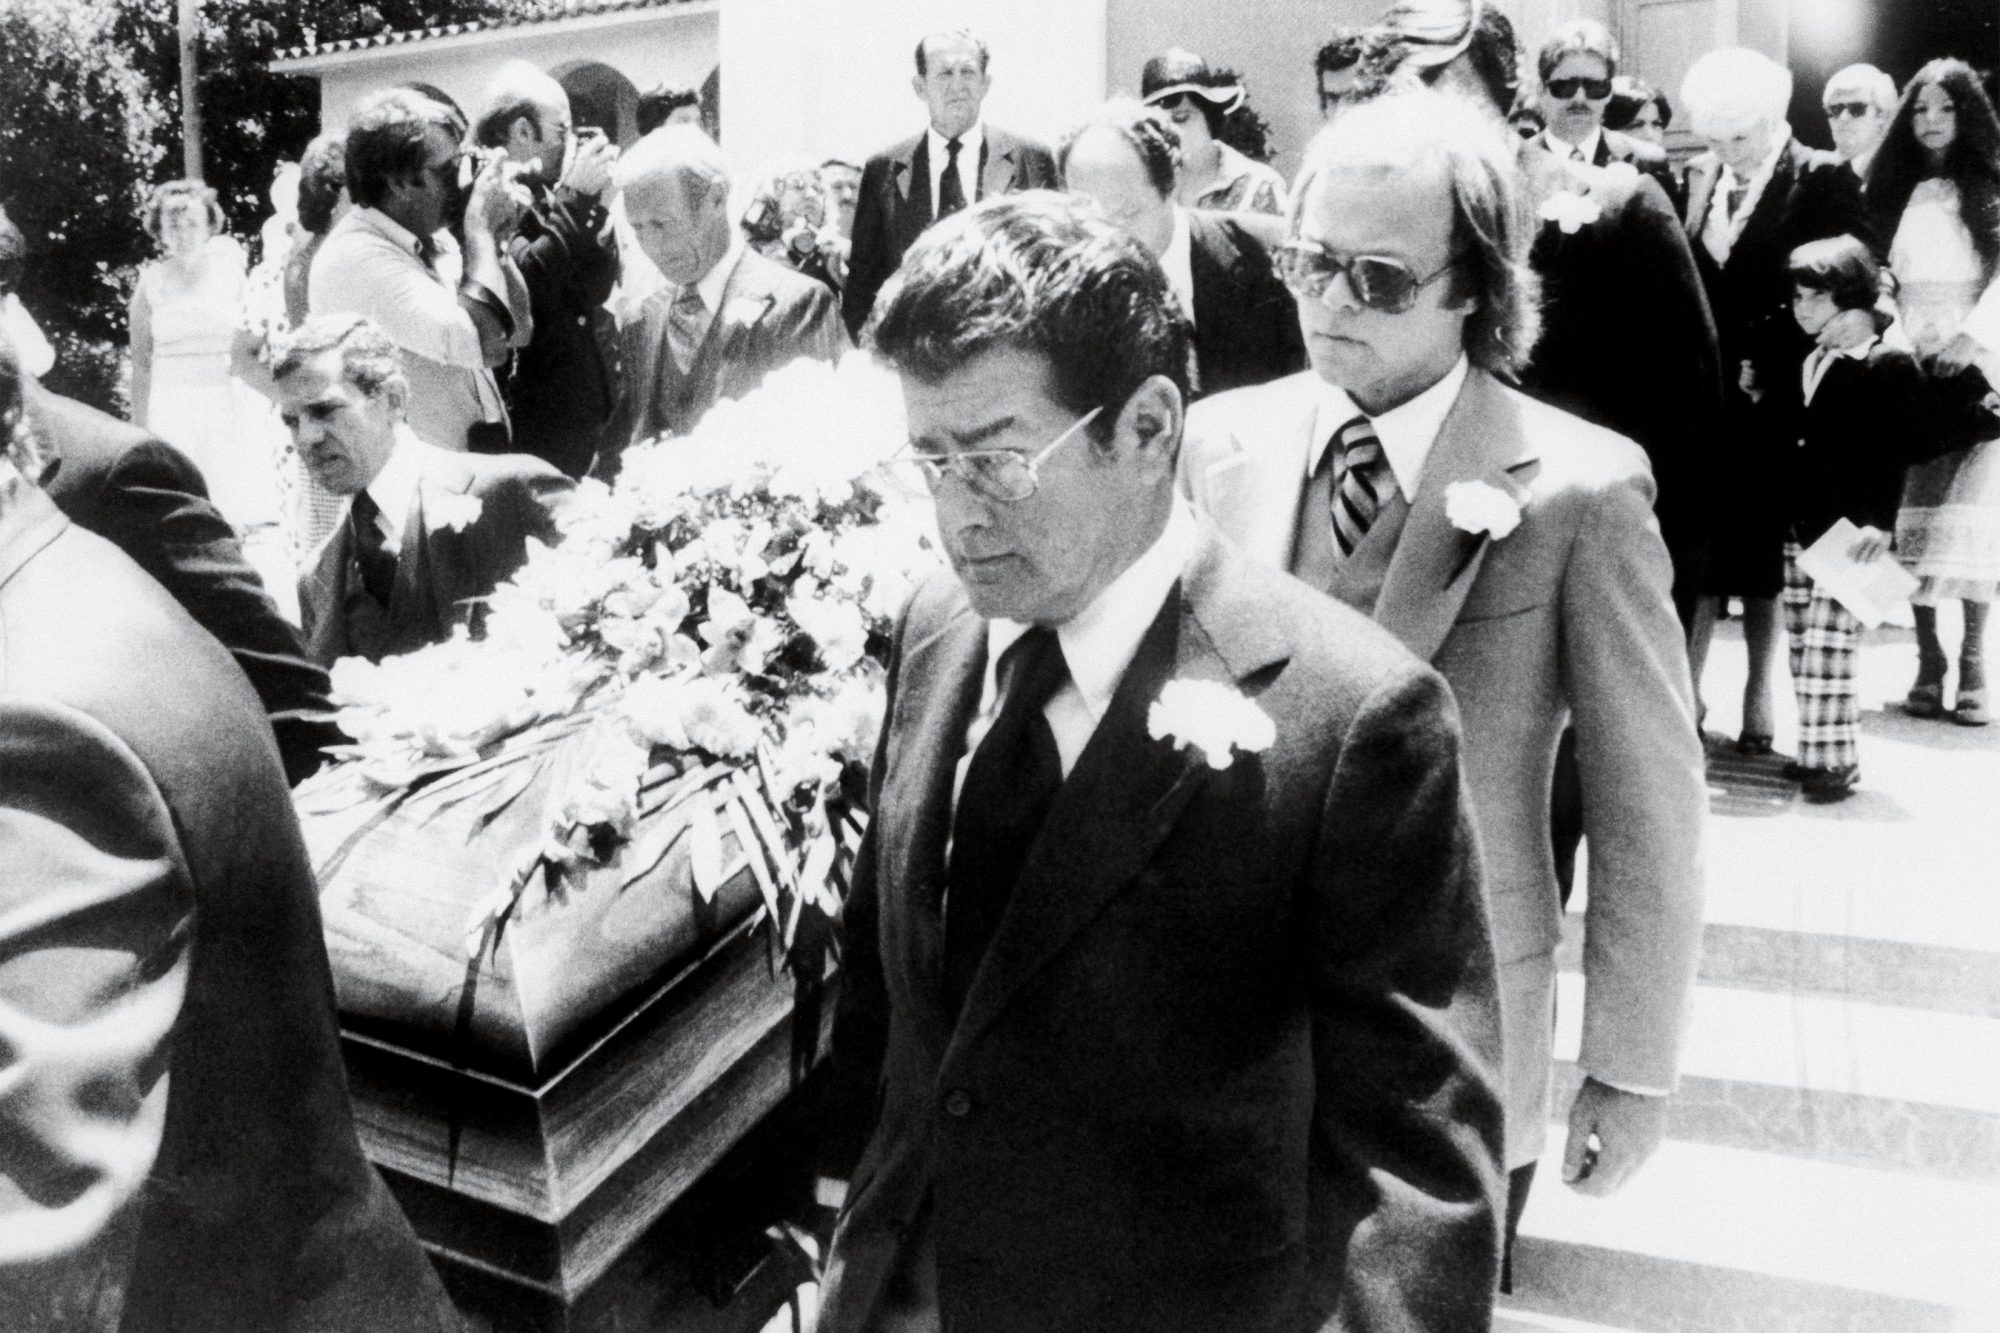 The casket containing the body of slain actor Bob Crane is carried down the steps of St. Paul the Apostle church following the funeral service on July 5, 1978. Among the pallbearers were Crane's son Robert Jr., as well as two other members of the Hogan's Heroes cast, Robert Clary (L) and Larry Hovis (C).